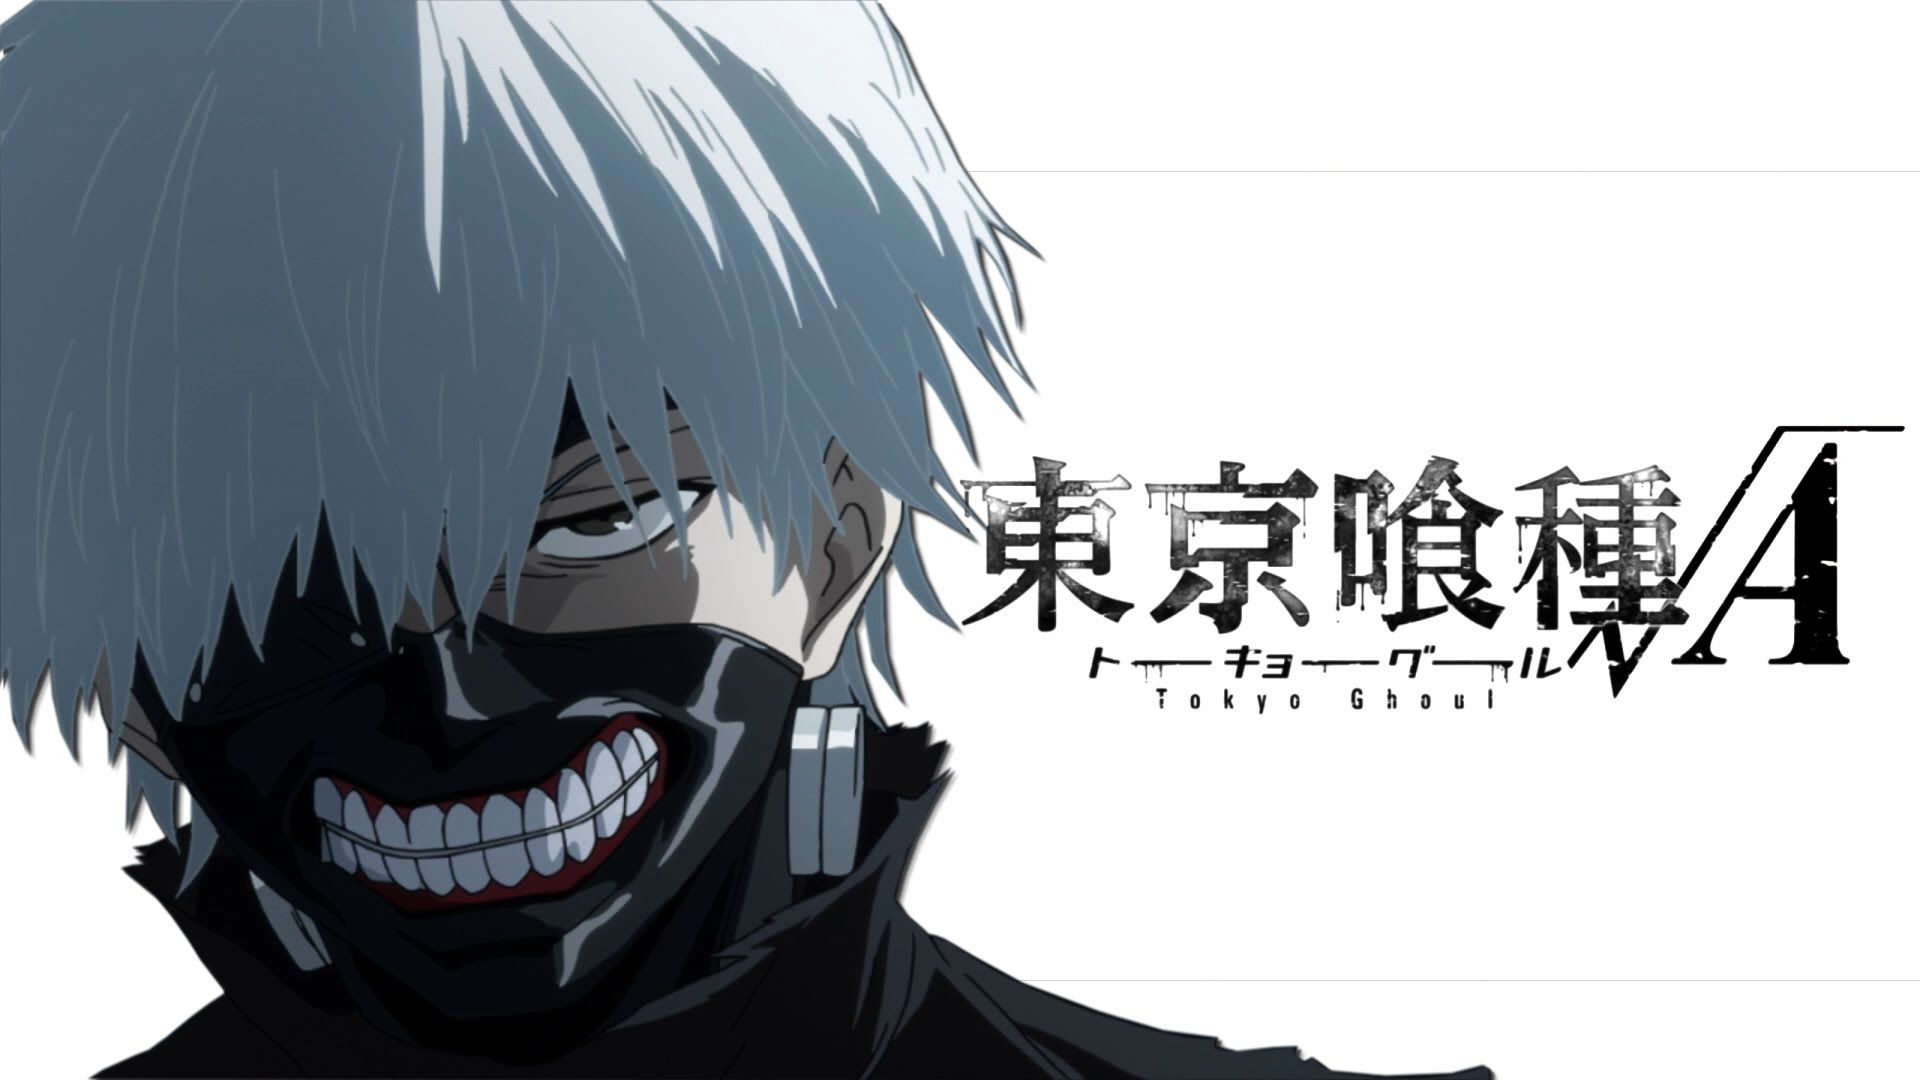 How Well Do You Know About Tokyo Ghoul Tokyo Ghoul Ss3 Tokyo